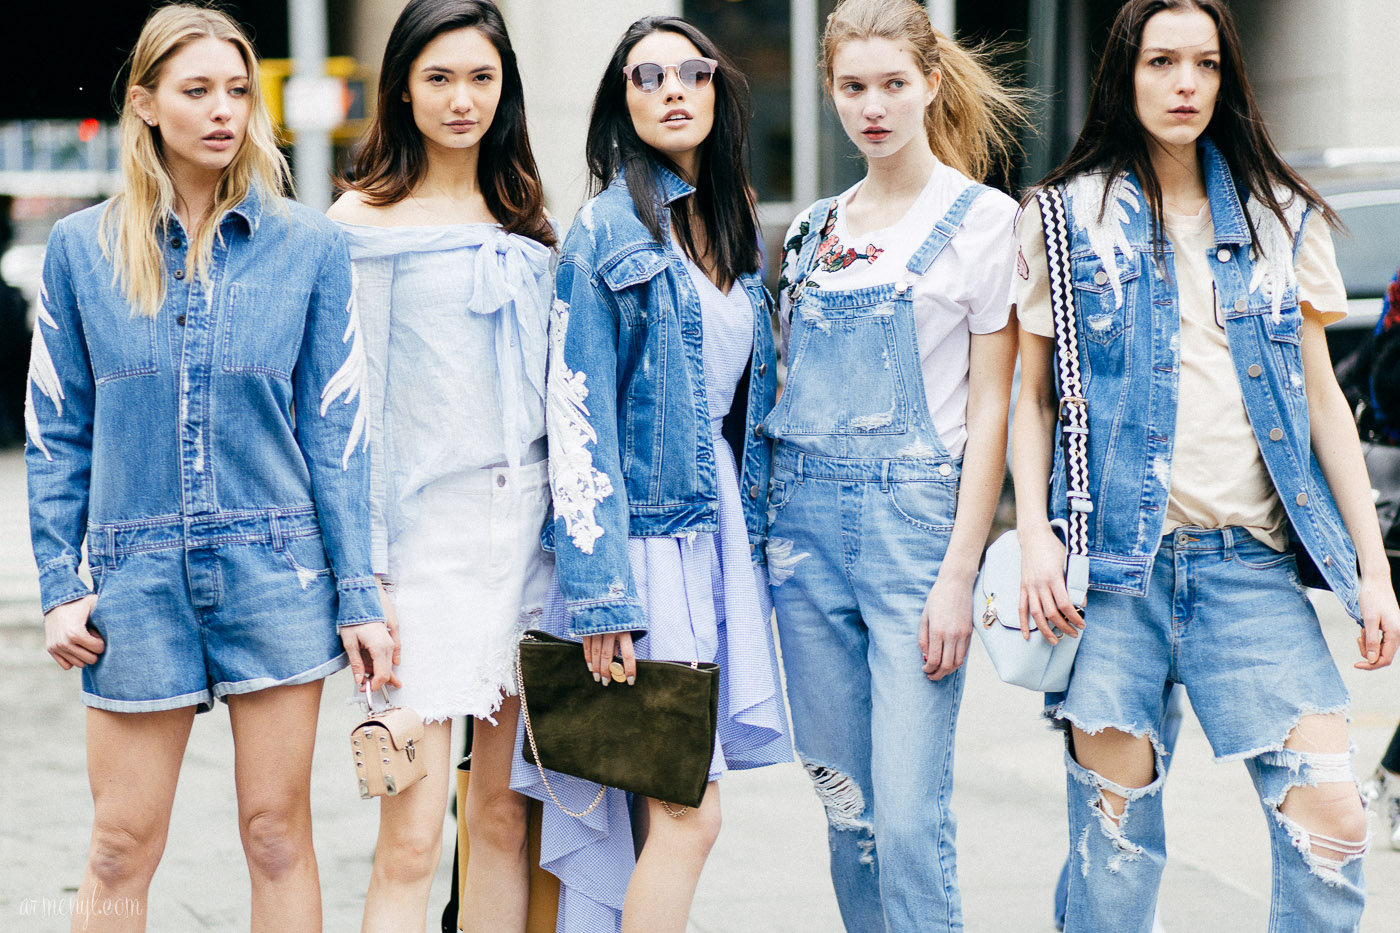 50 shades of denim - Girls in shades of denim outside the Proenza Schouler Fall 2017 show in New York, New York, February 2017 photographed by Armenyl.com